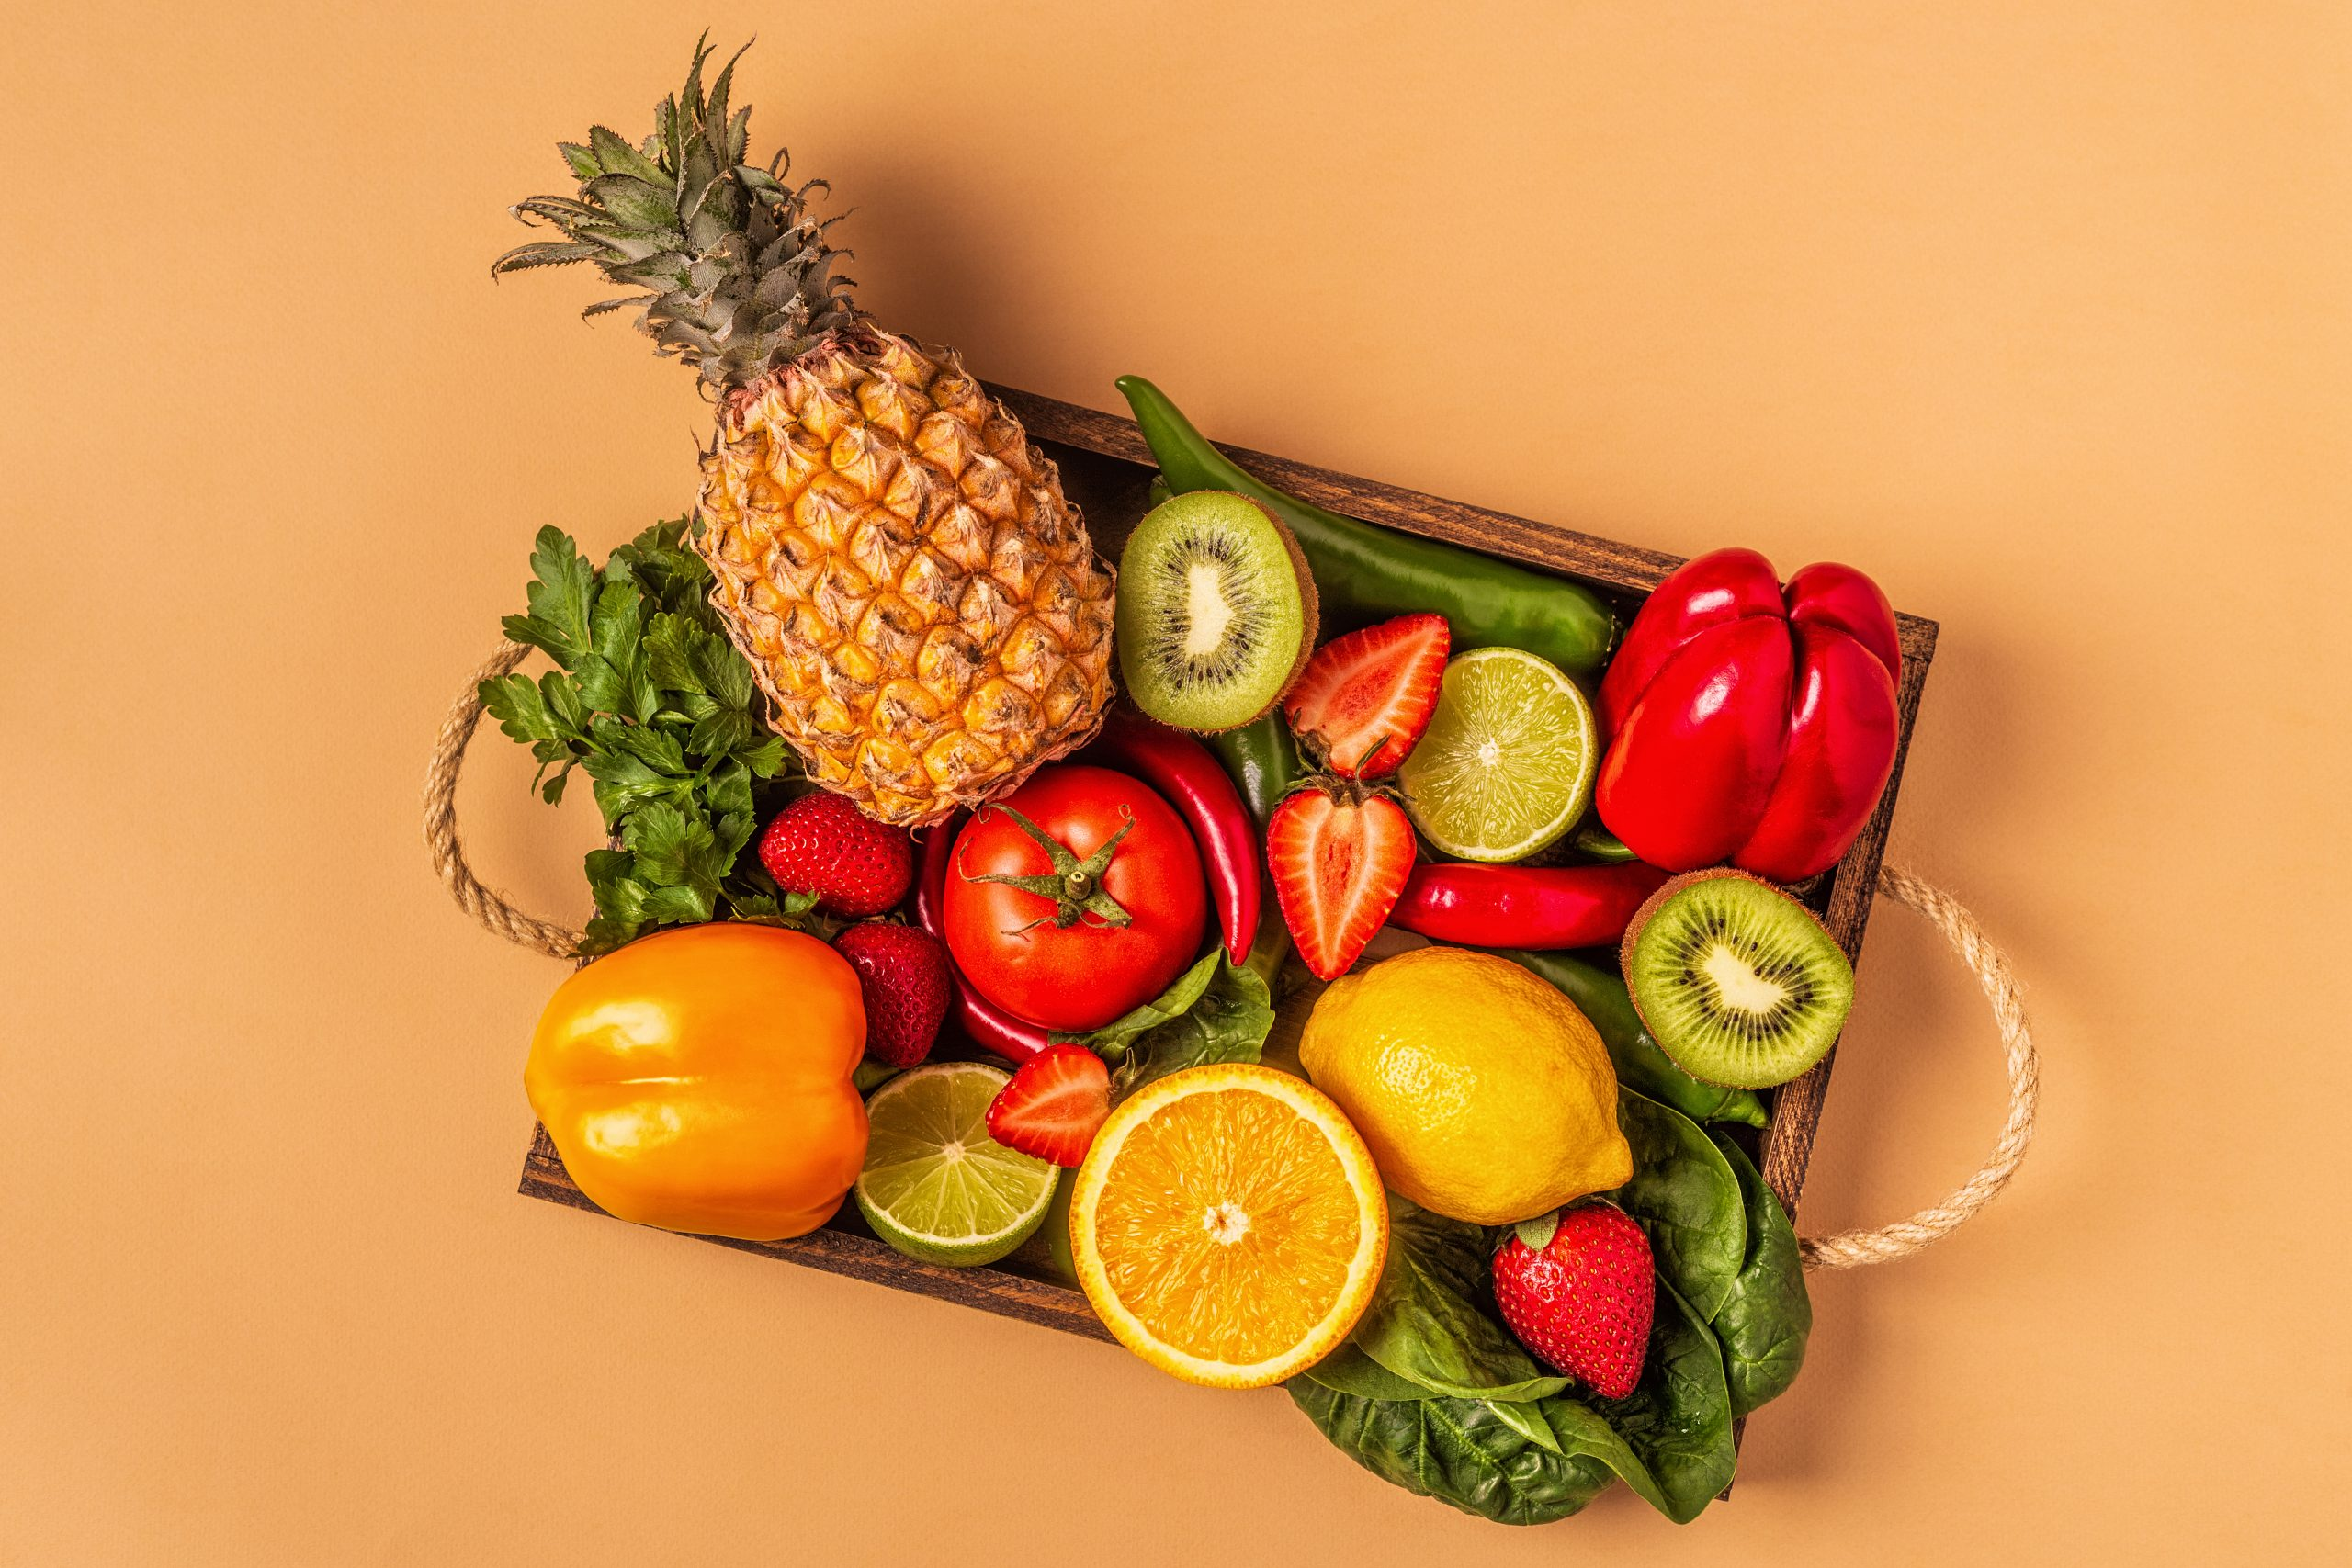 Fruits and vegetables rich in vitamin C in box.